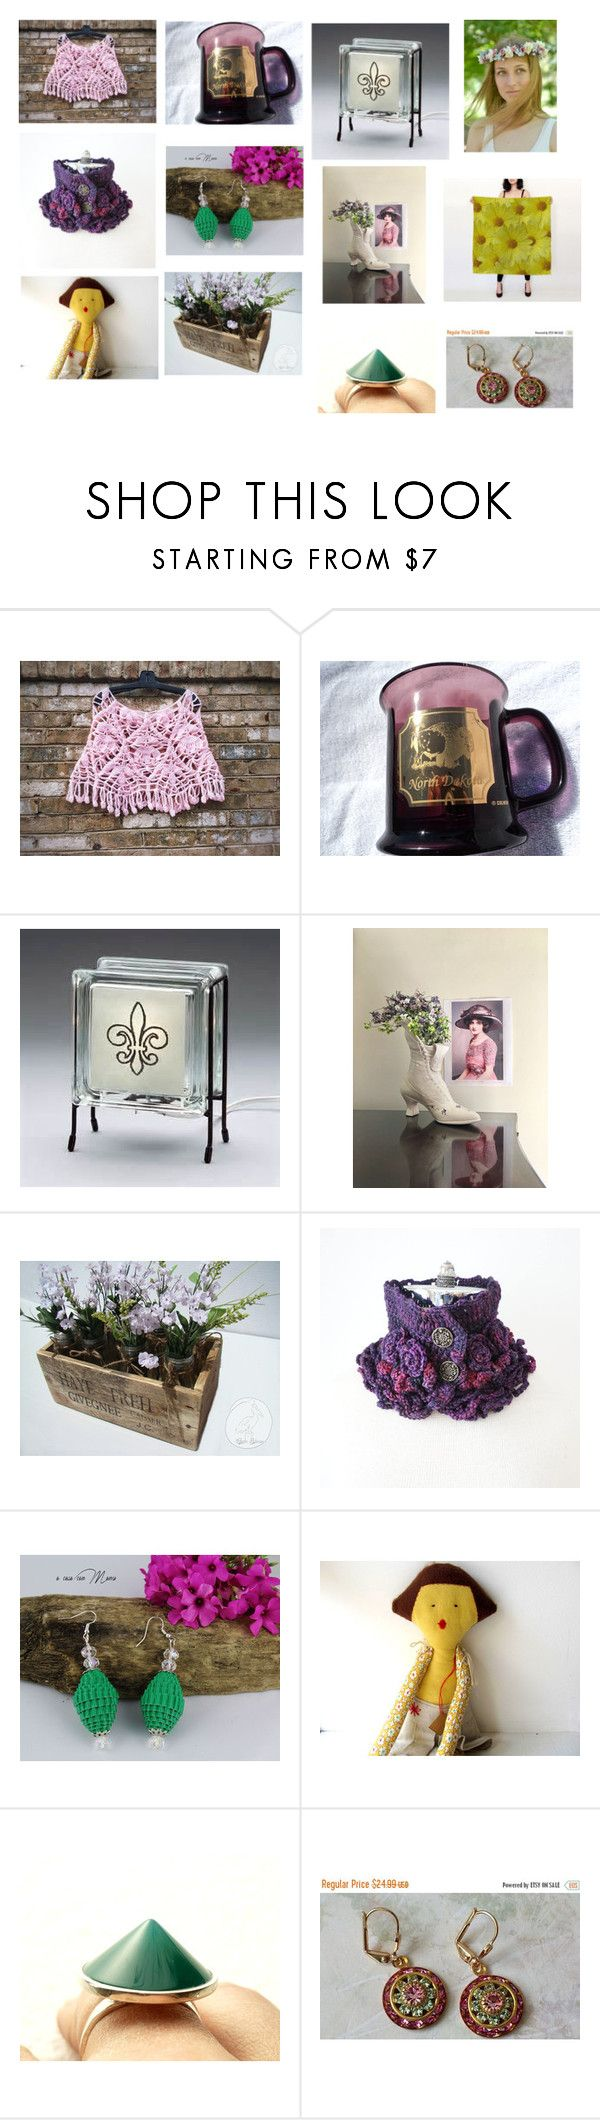 """""""Idee regalo da Etsy"""" by acasaconmanu ❤ liked on Polyvore featuring Anello"""